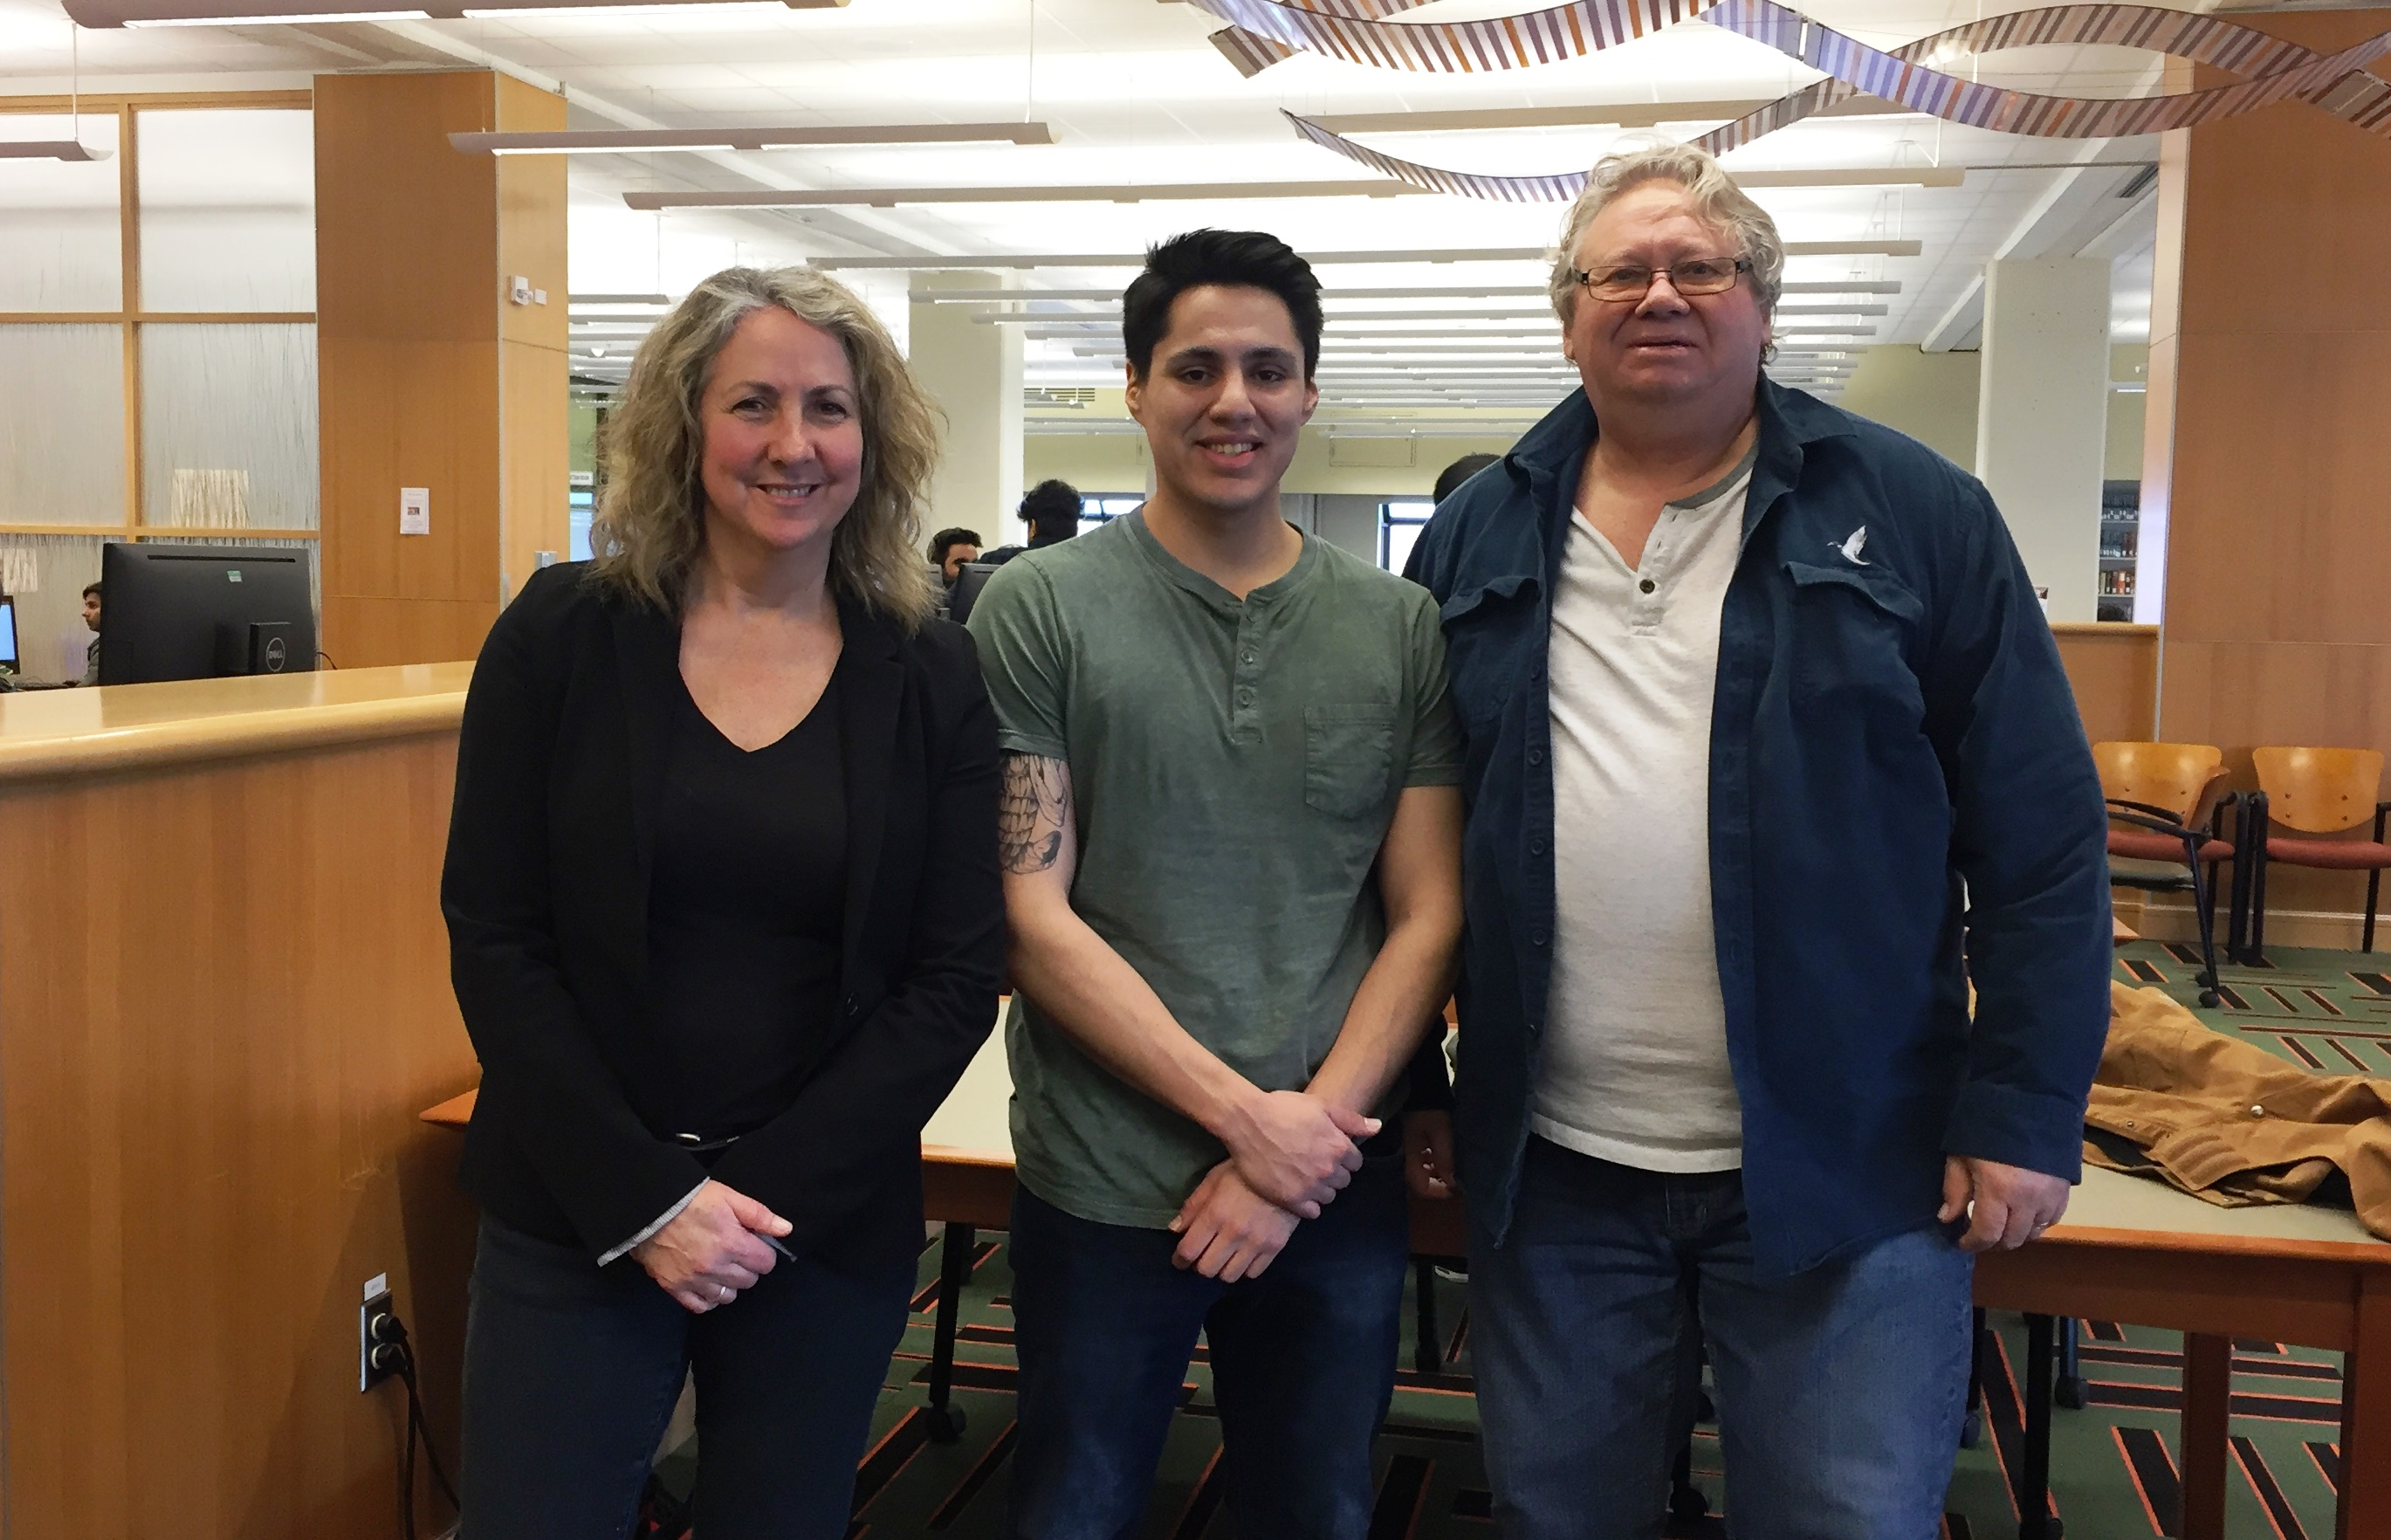 Dr. Terry Gibbs, and Garry Dennis, CBU Library Ambassador with Paul Strome at CBU Library